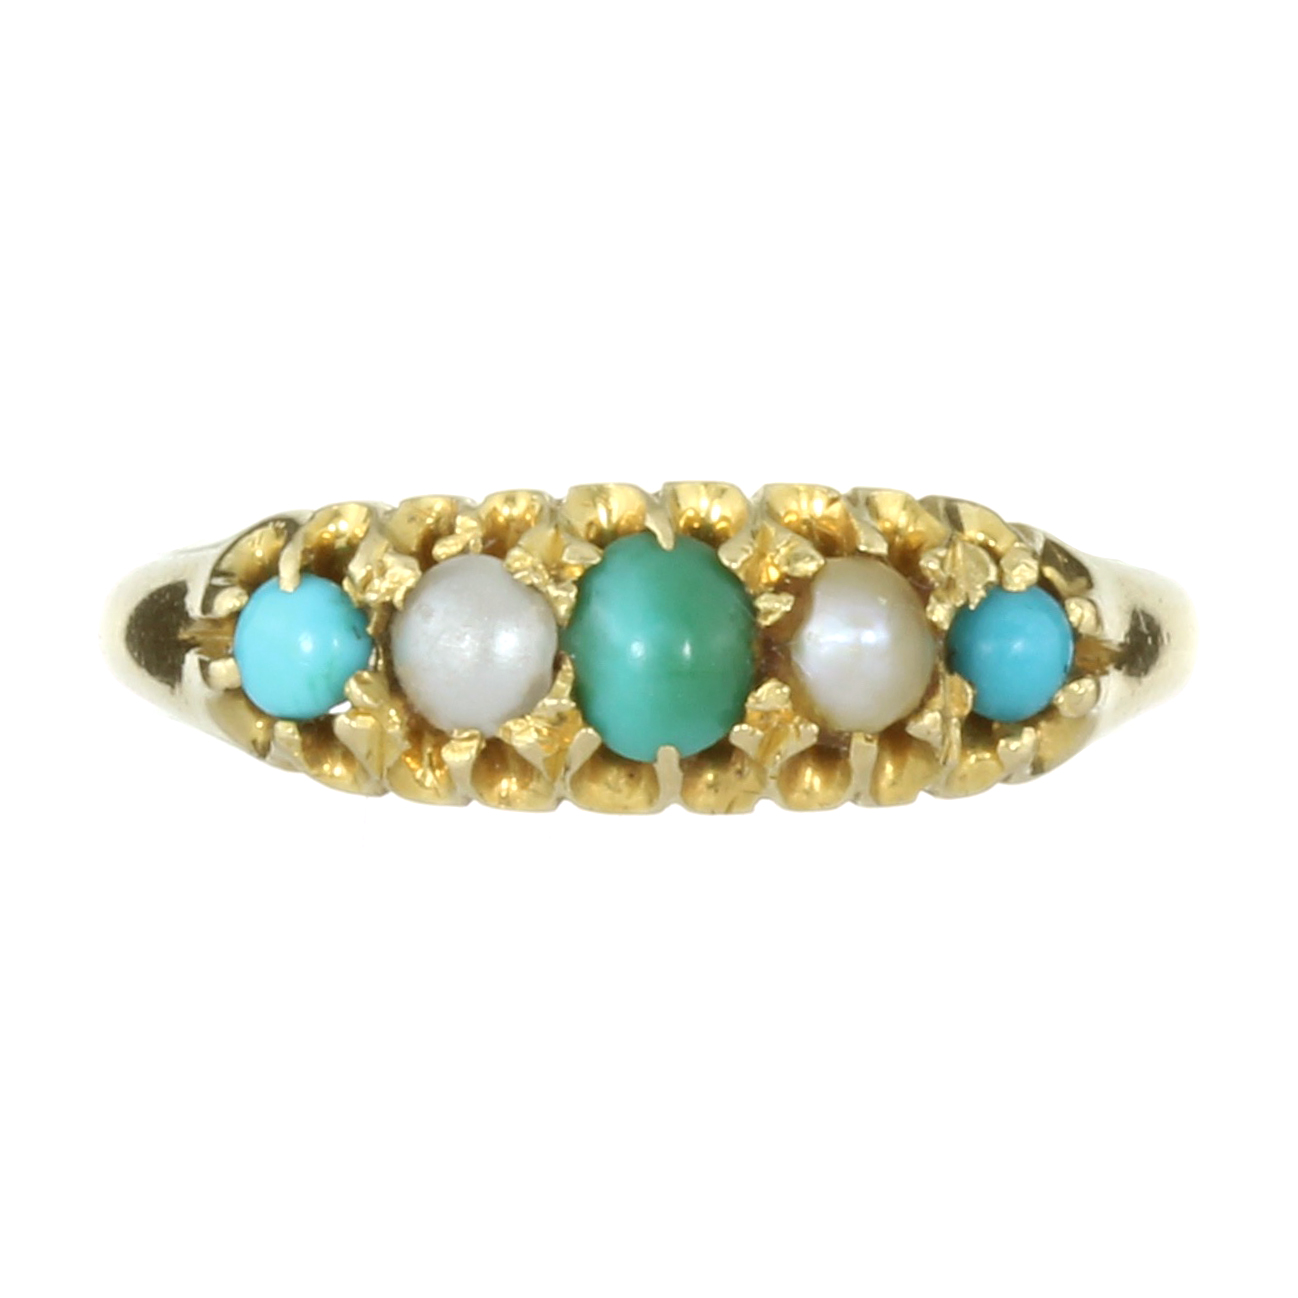 AN ANTIQUE TURQUOISE AND PEARL FIVE STONE RING, 1901 in 18ct yellow gold set with a single row of